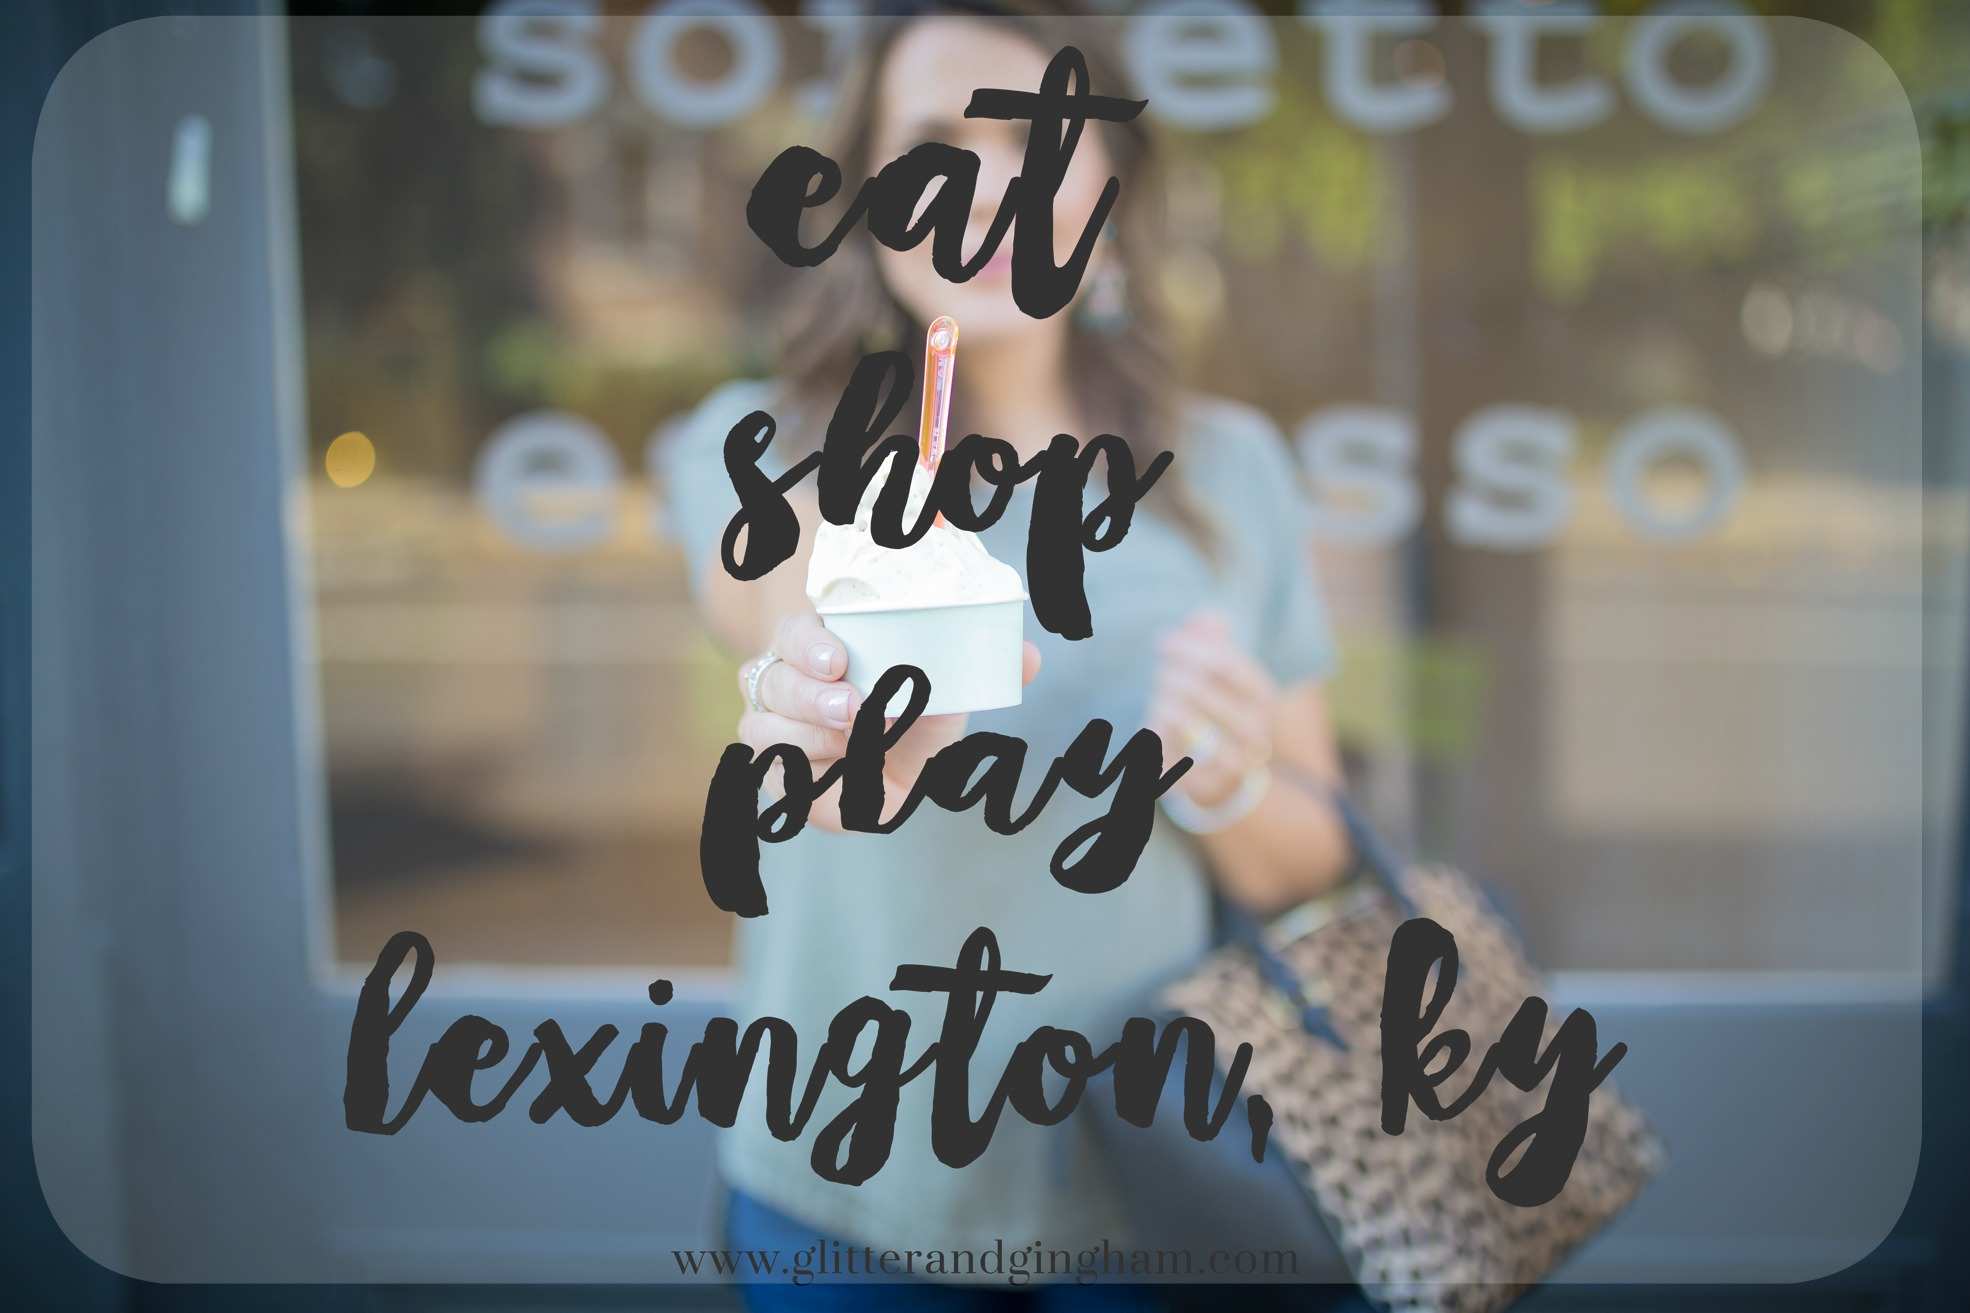 Lexington, KY City Guide // The best places to eat, shop & play in Lexington ft. Indigo Rd.